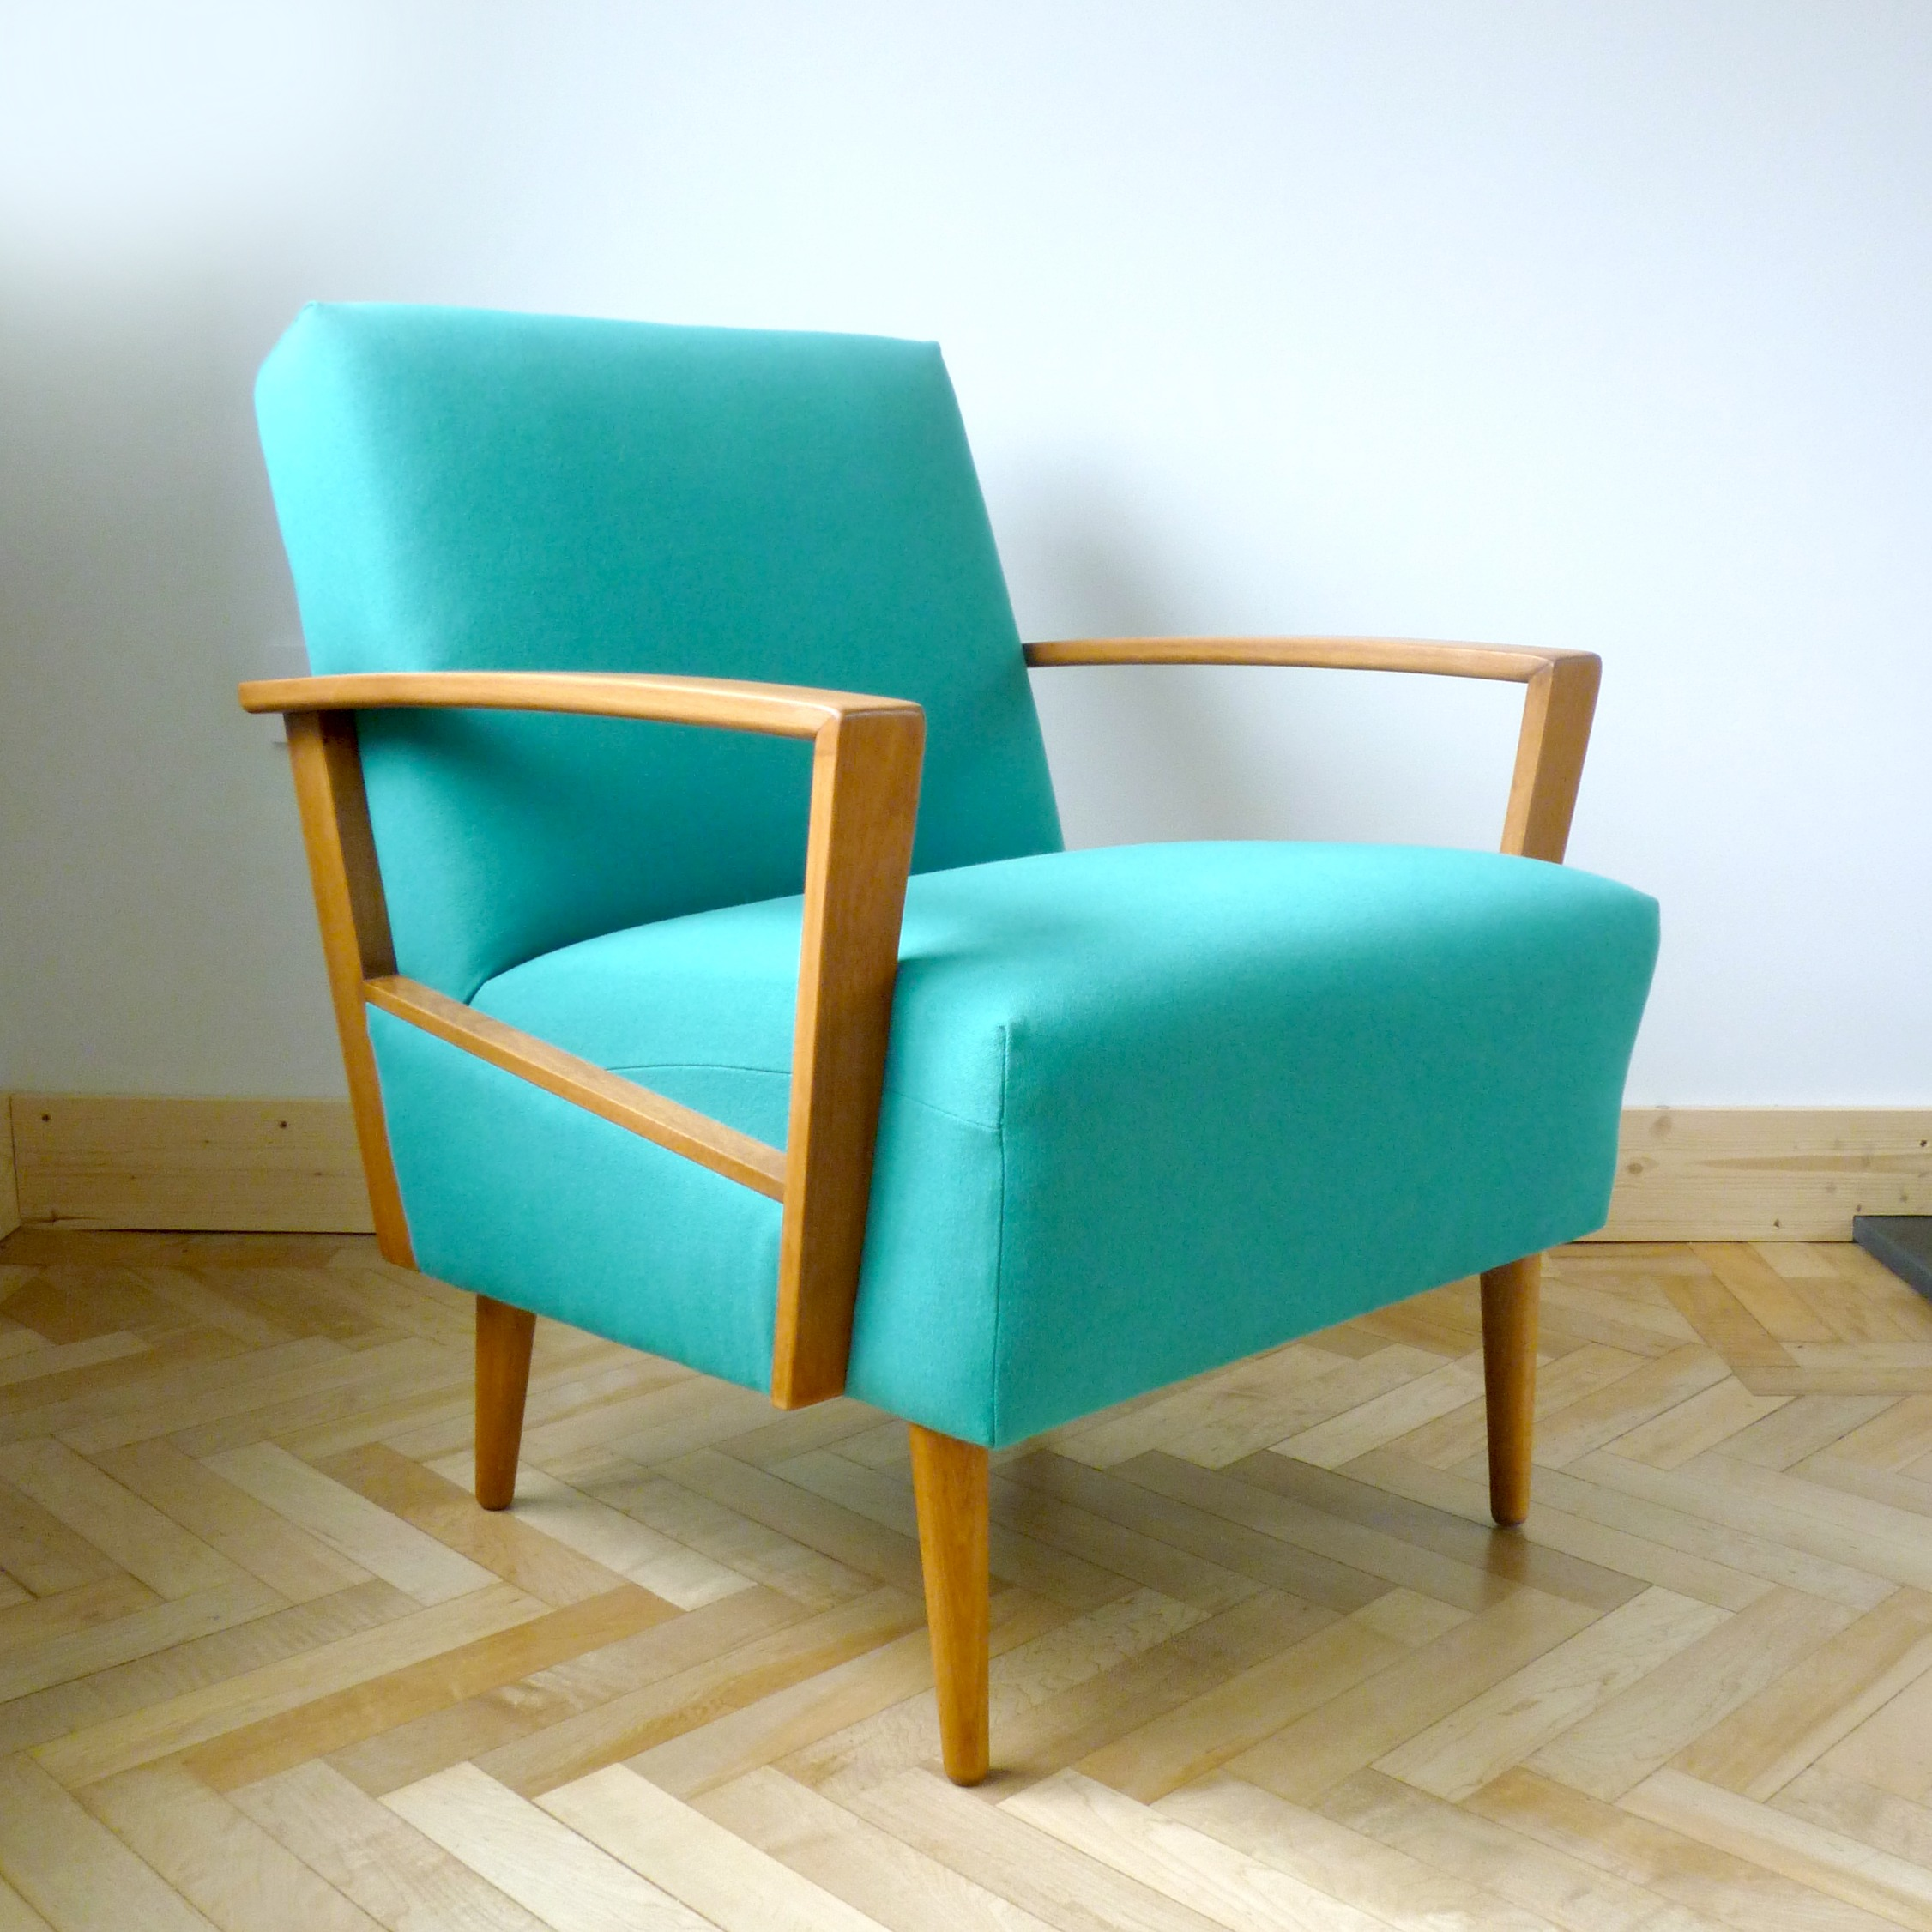 chair design brands slip covers dining room teal retro danish armchair from drab to dreamy florrie 43bill